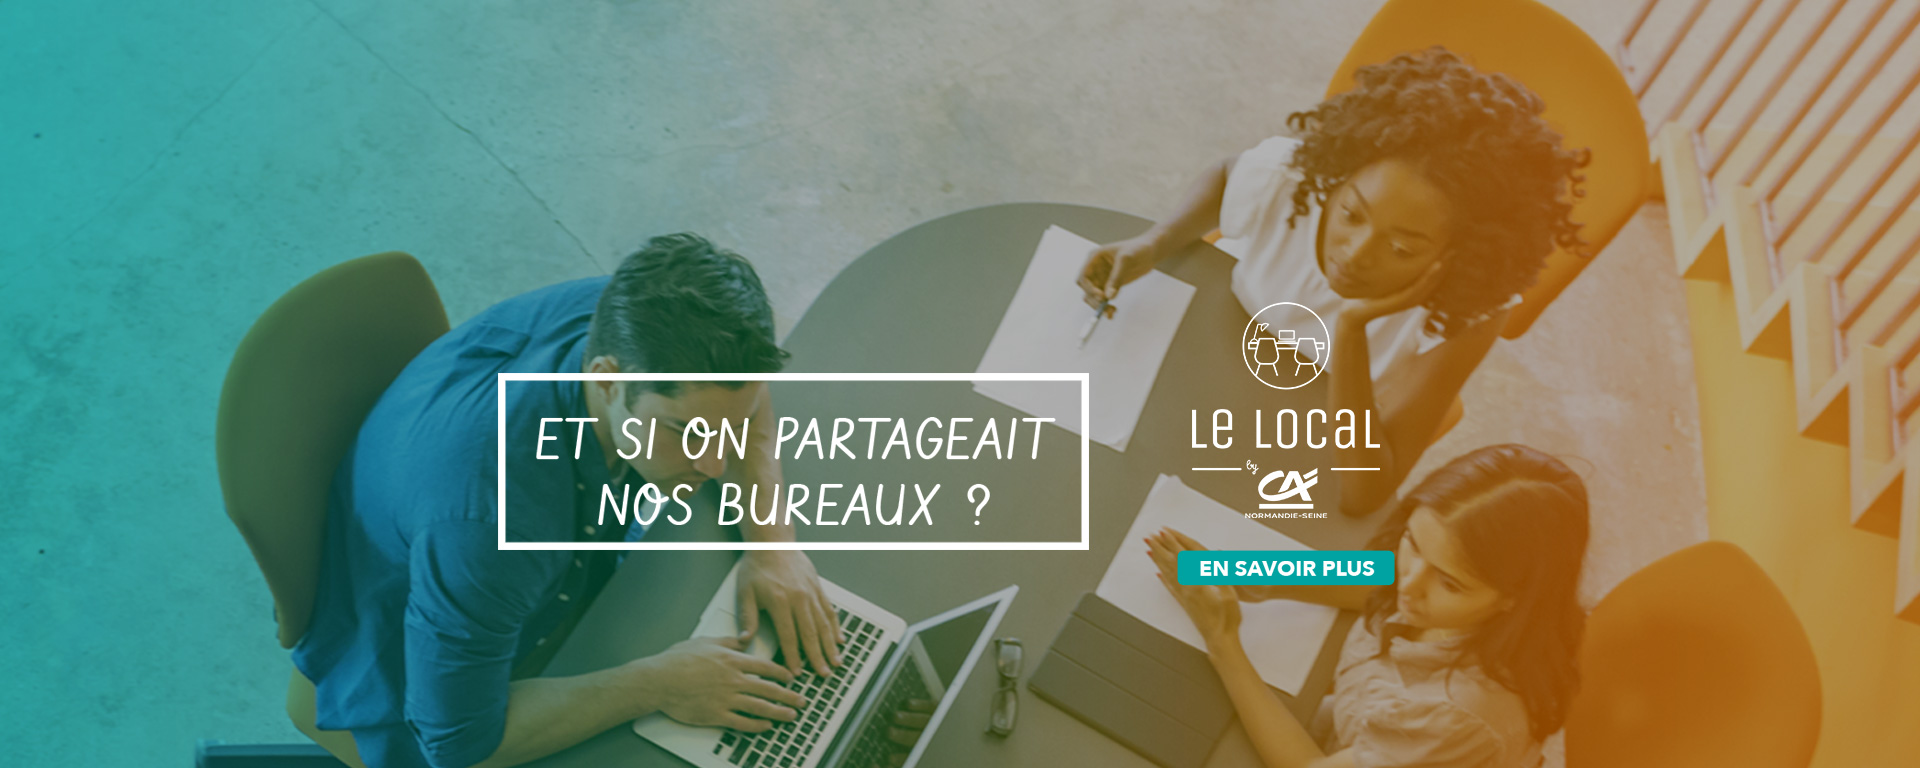 Le Local by CANS